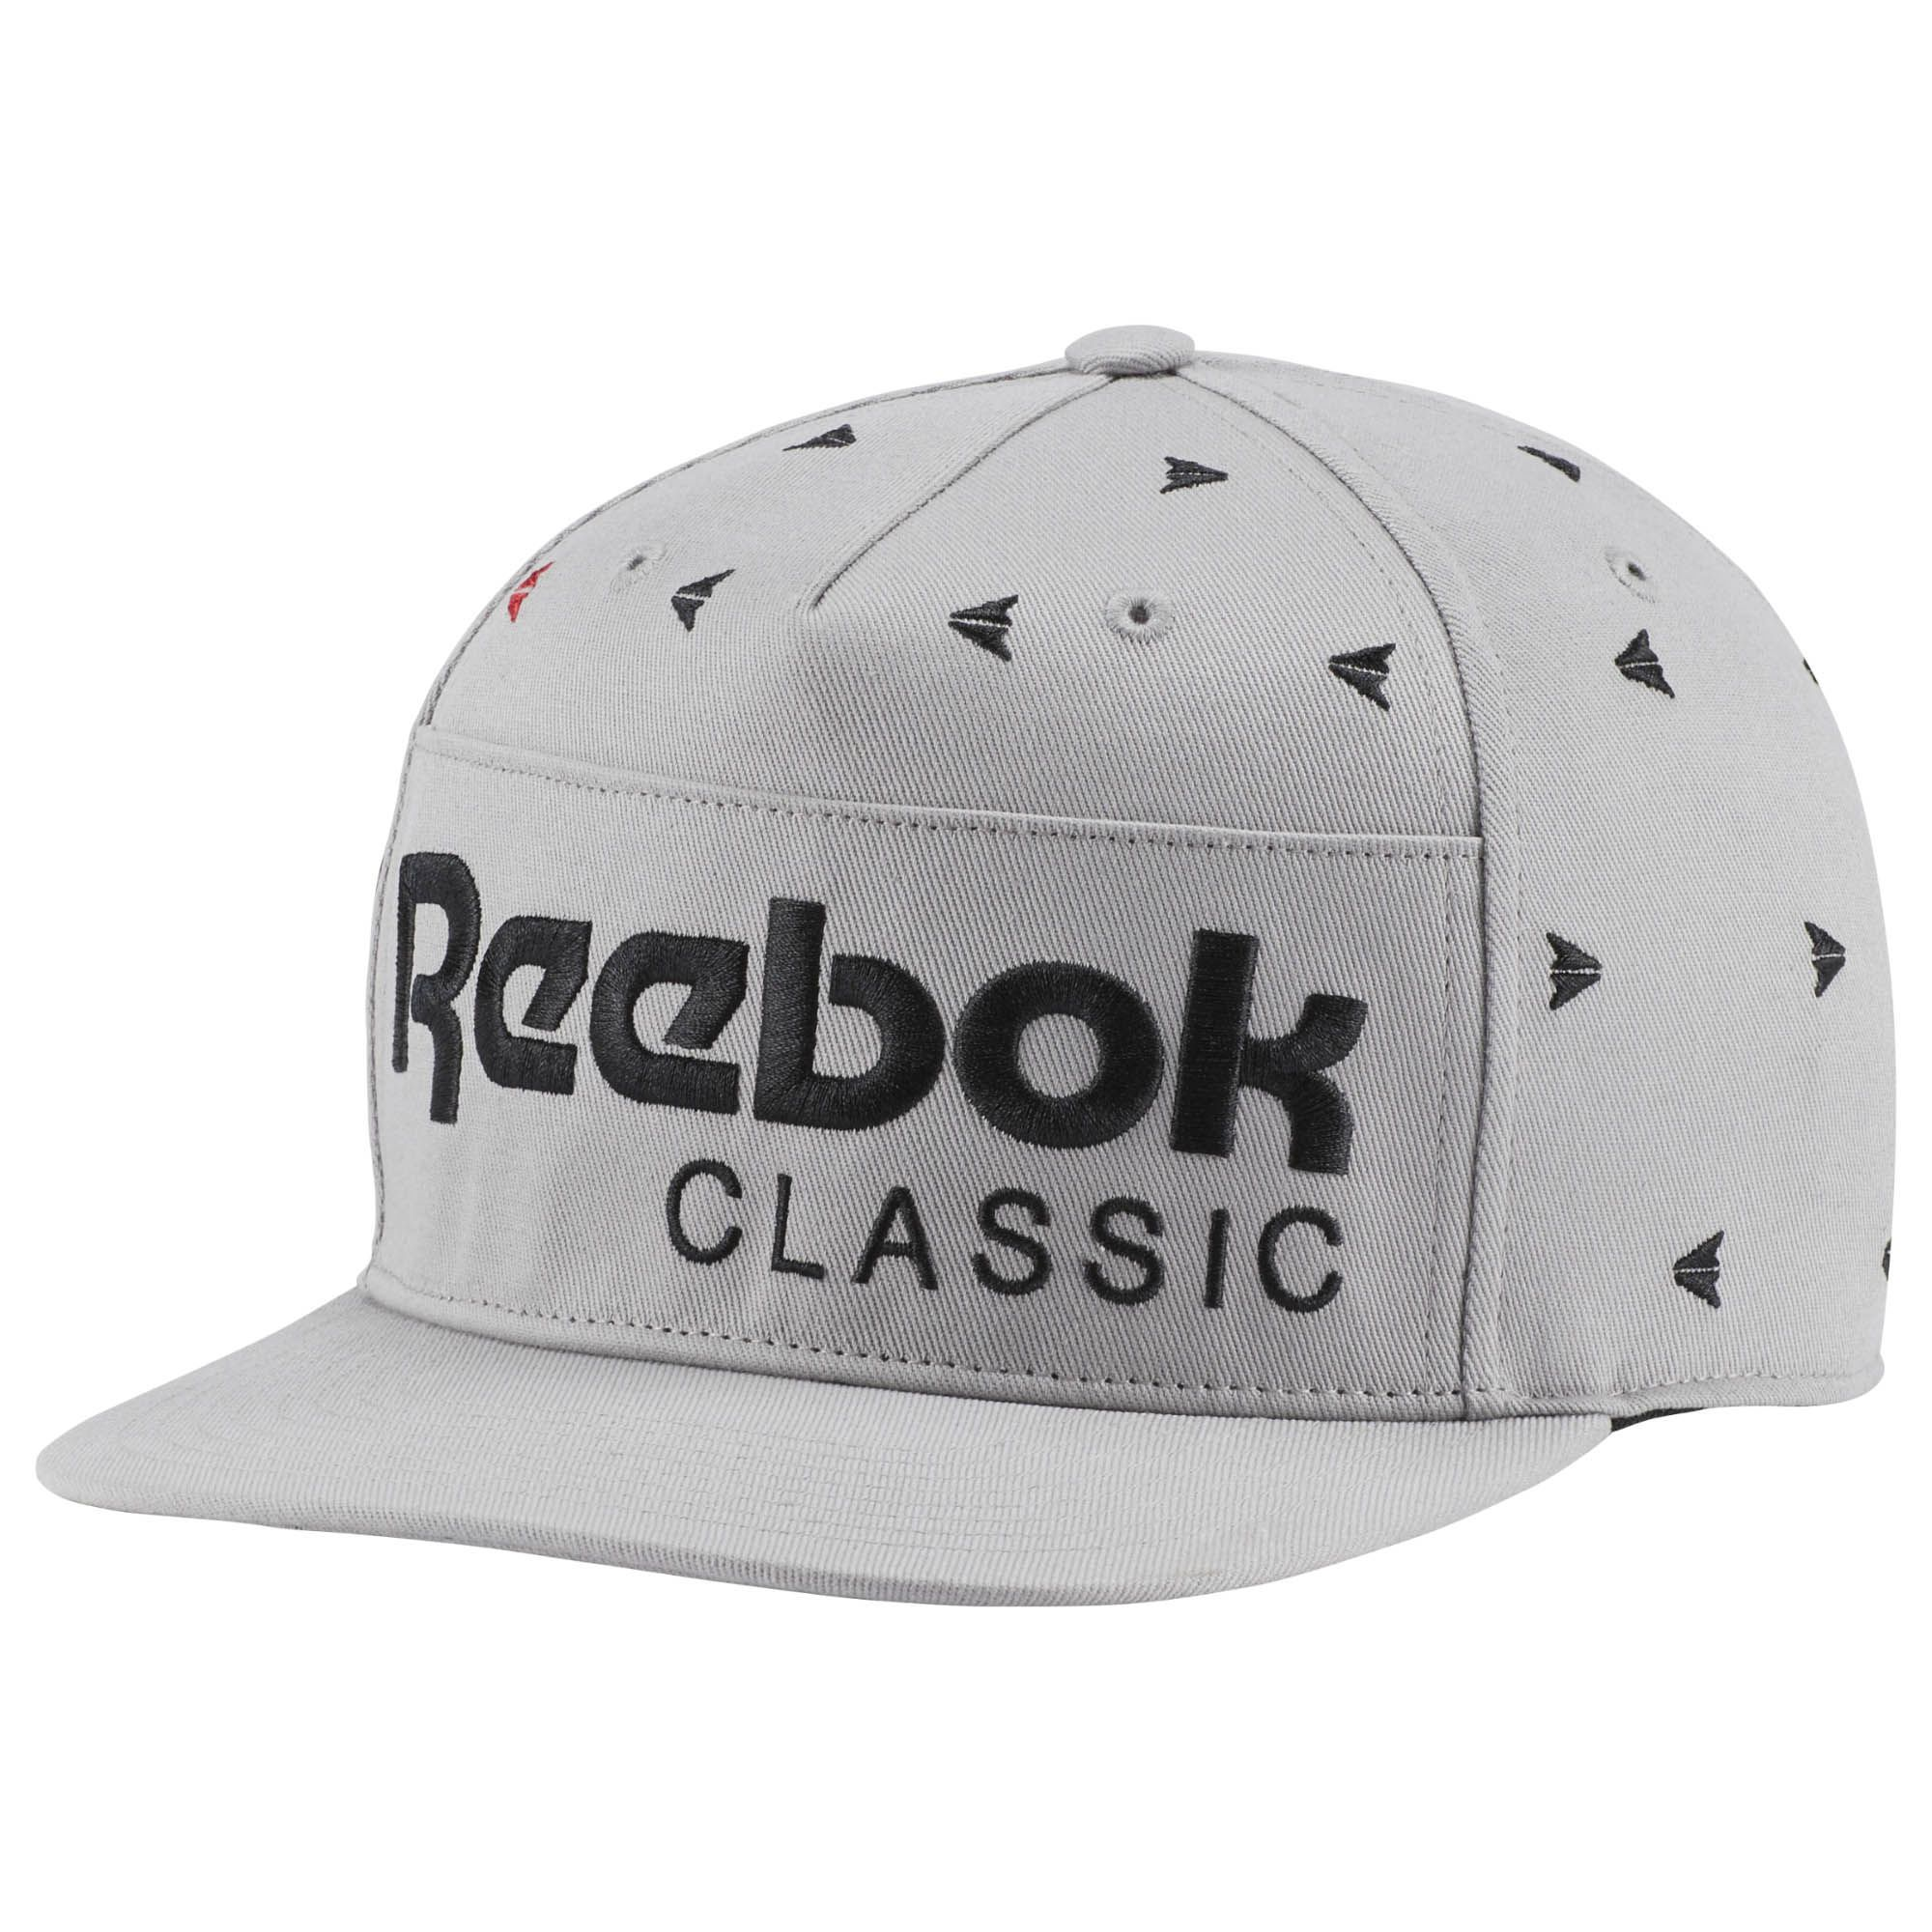 Reebok Classic Embroidered Hat Grey Reebok Us Black Nike Shoes Mens Hats Fashion Hats For Men